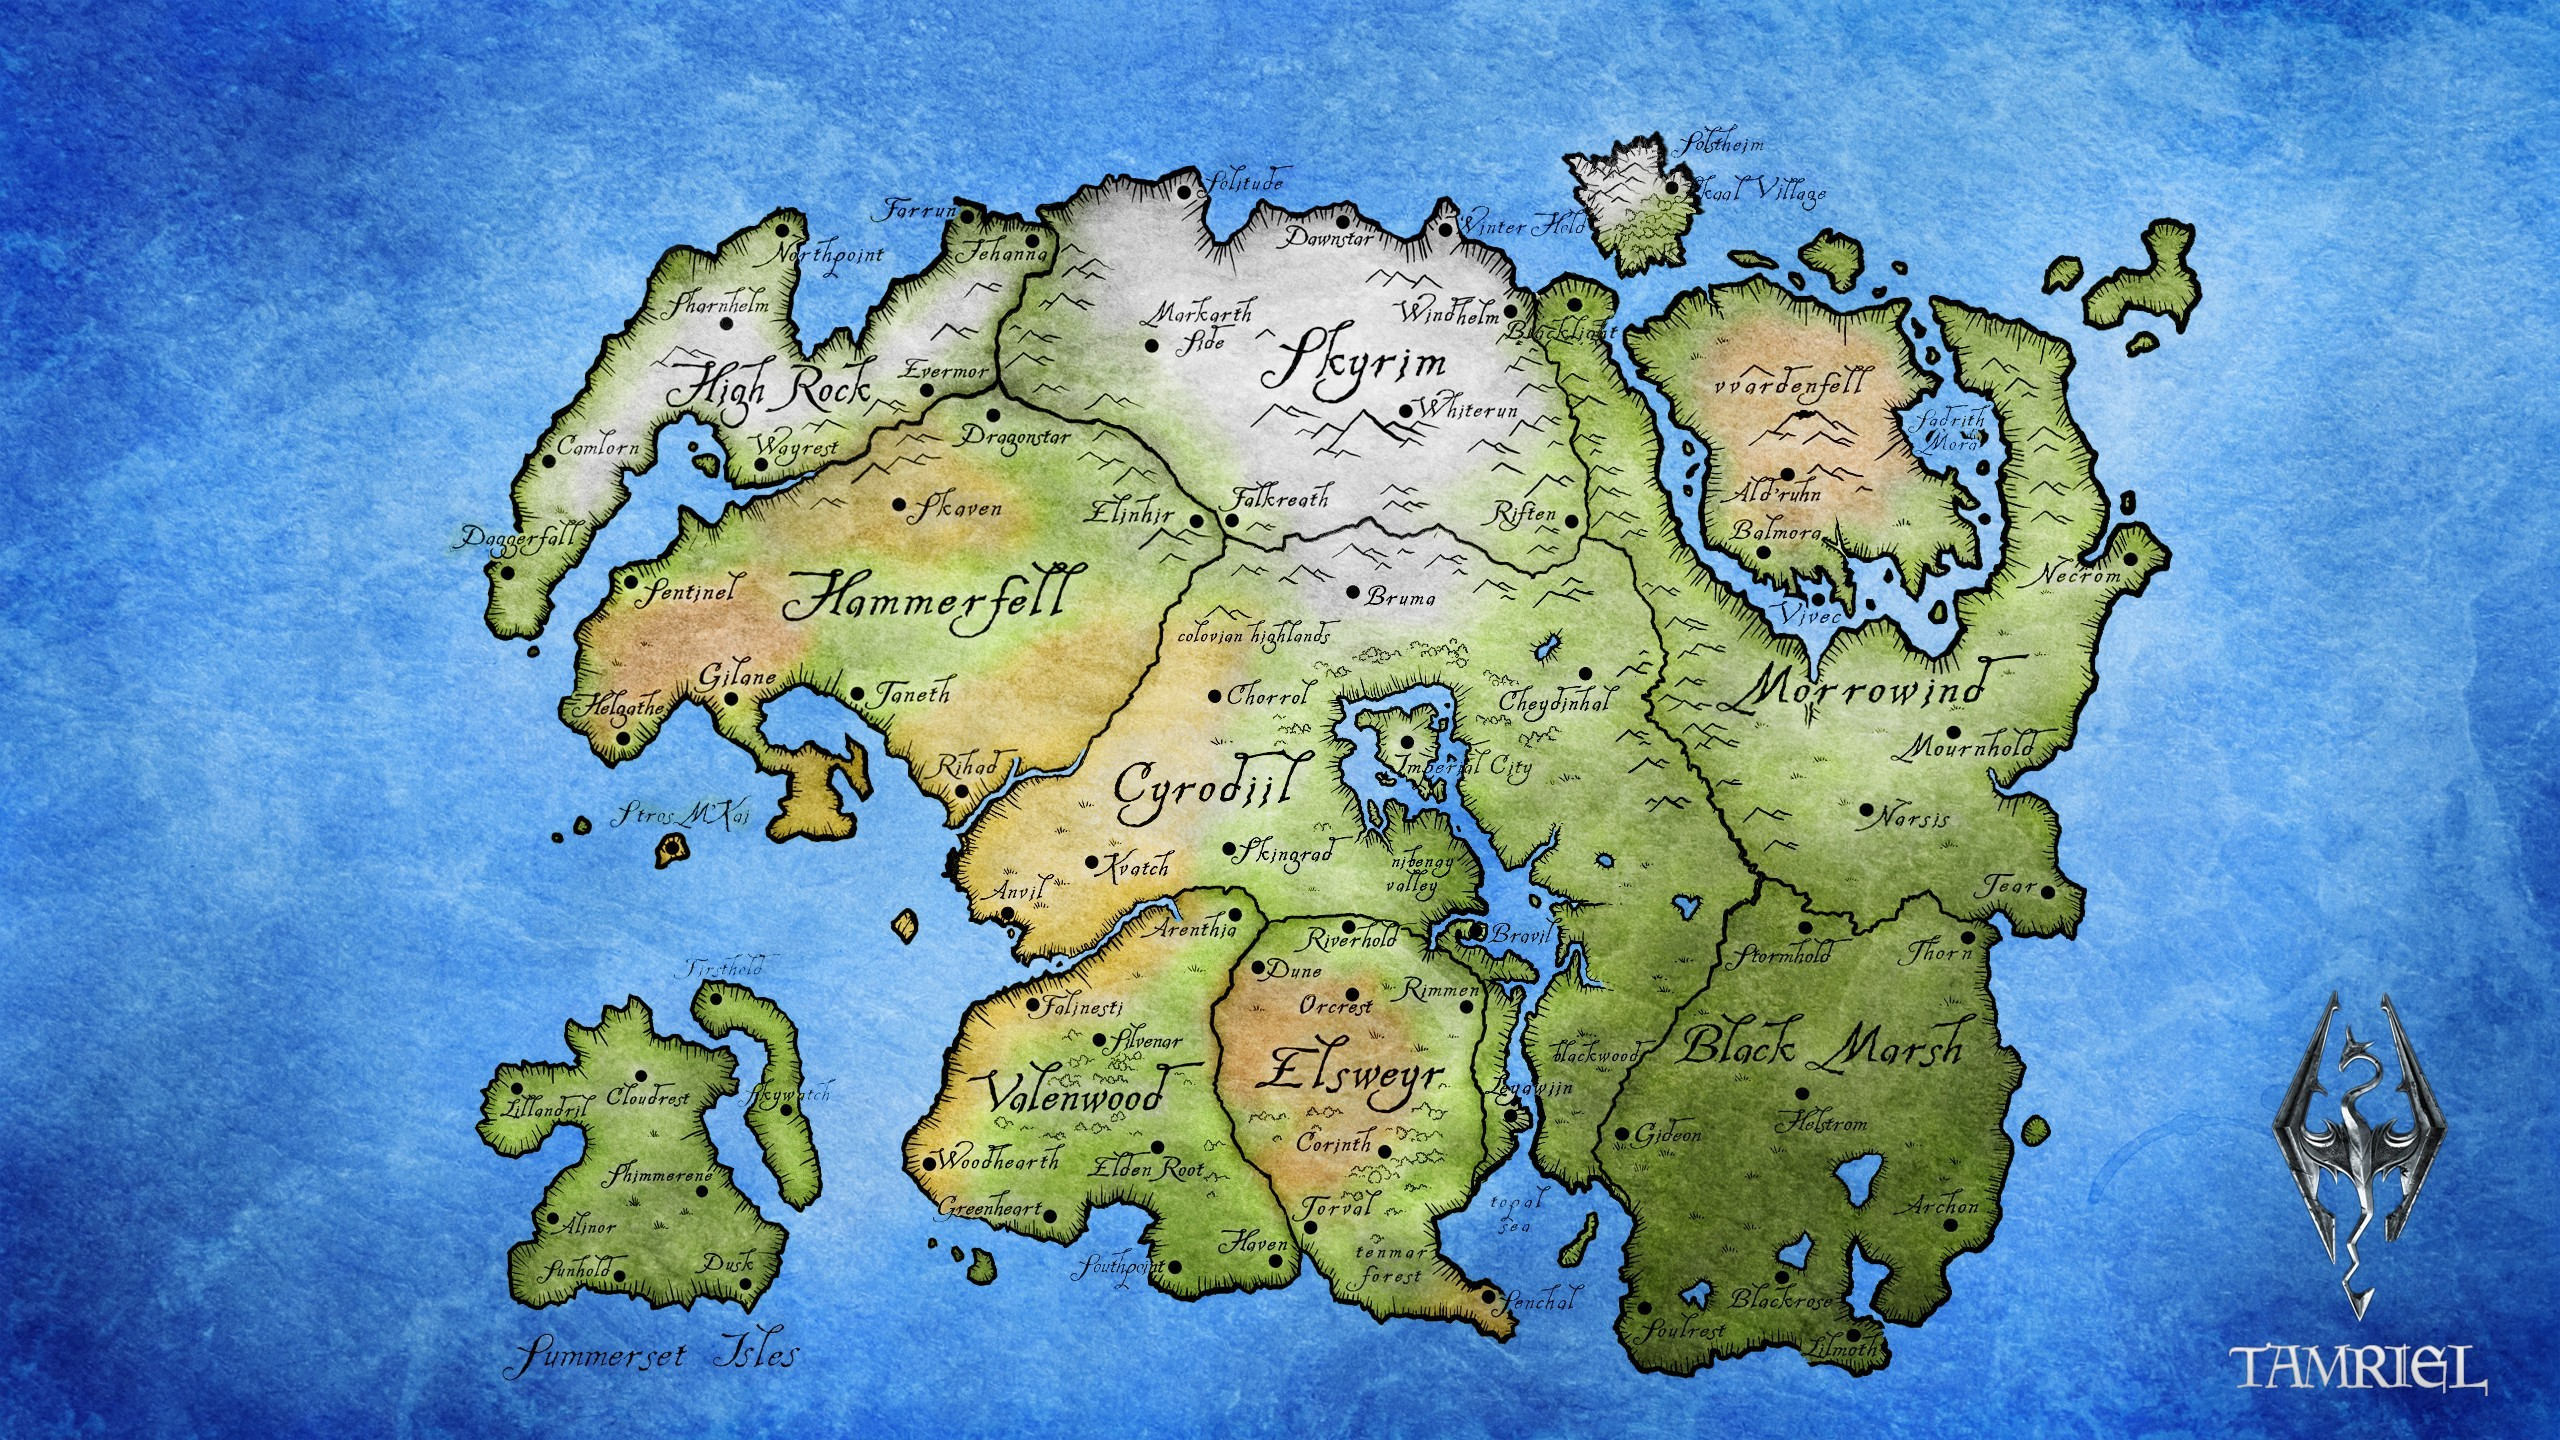 Games_Map_of_Tamriel_in_Elder_Scrolls_game_103980_.jpg